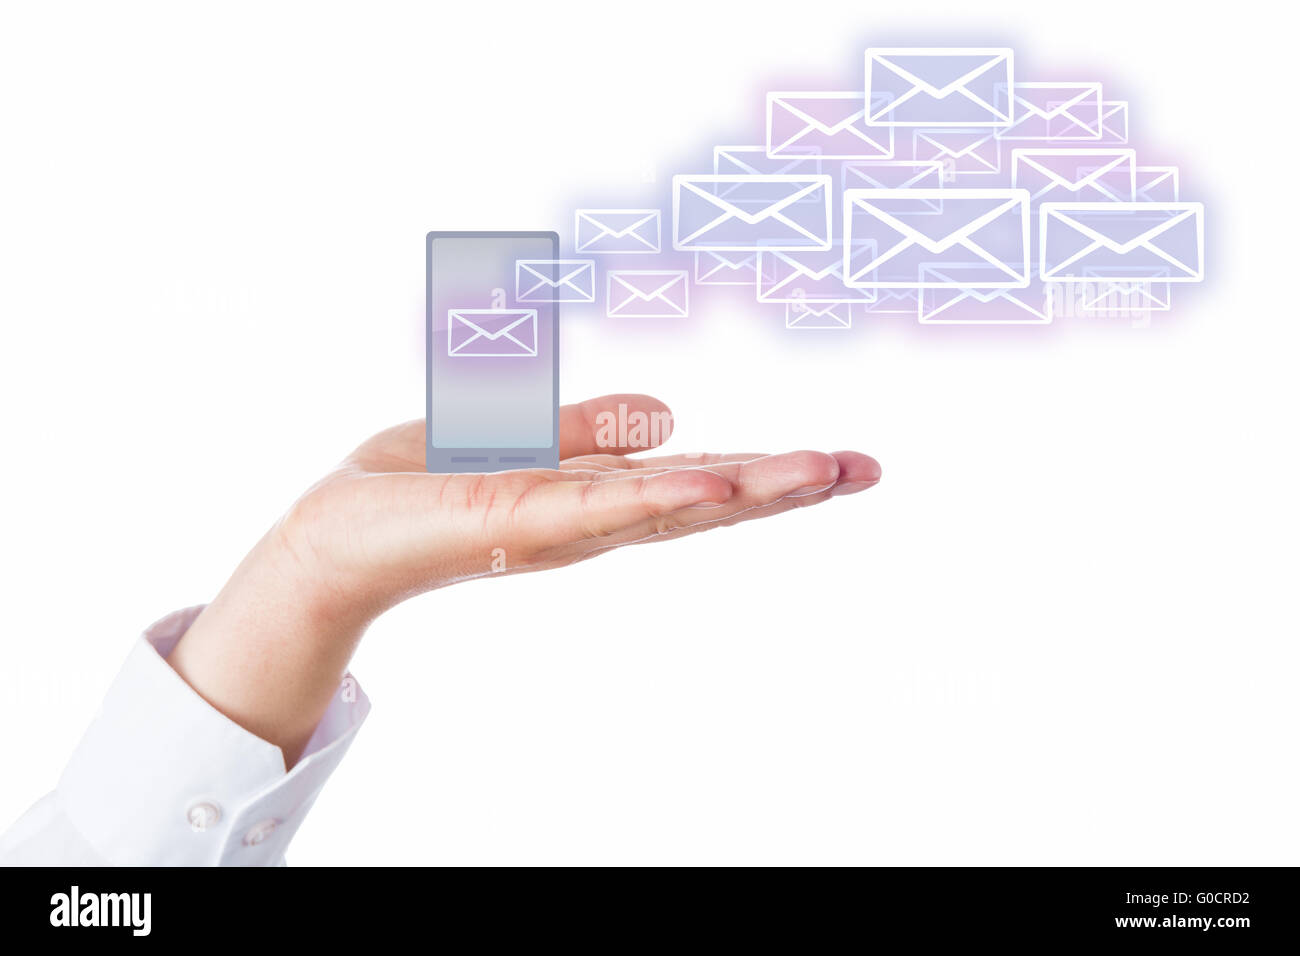 Emails Leaving Cell Phone In A Palm For The Cloud - Stock Image